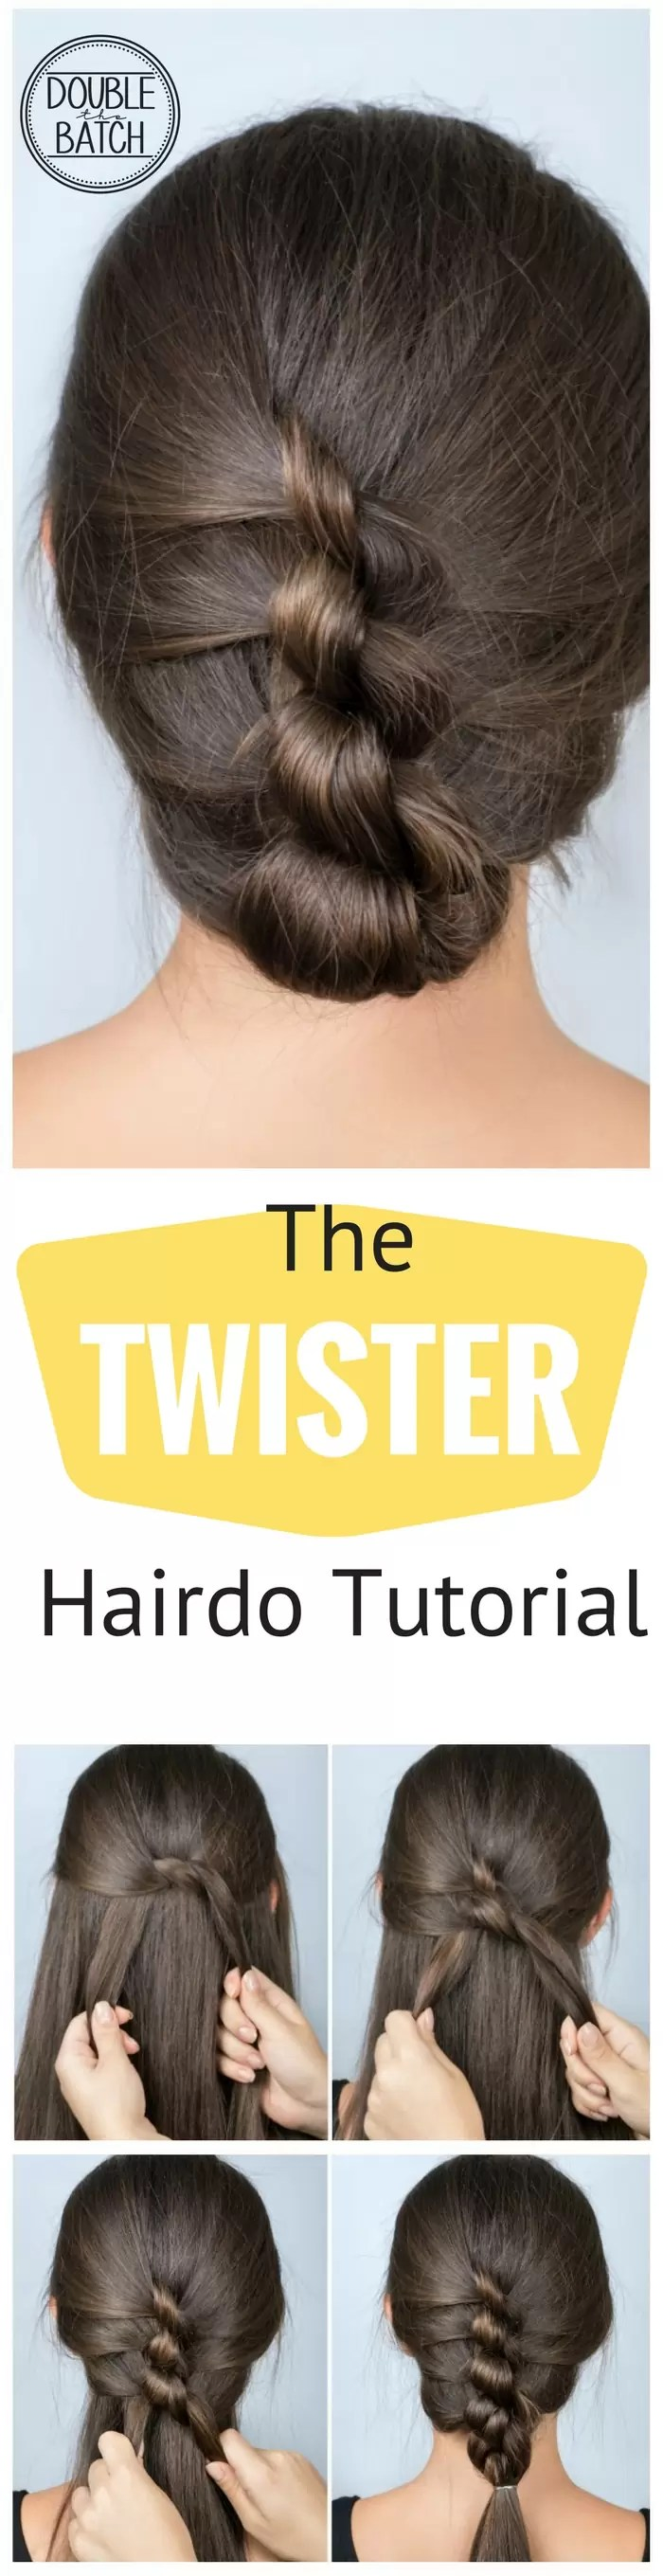 Super simple hairstyles for School: TWISTER Hairstyle Tutorial